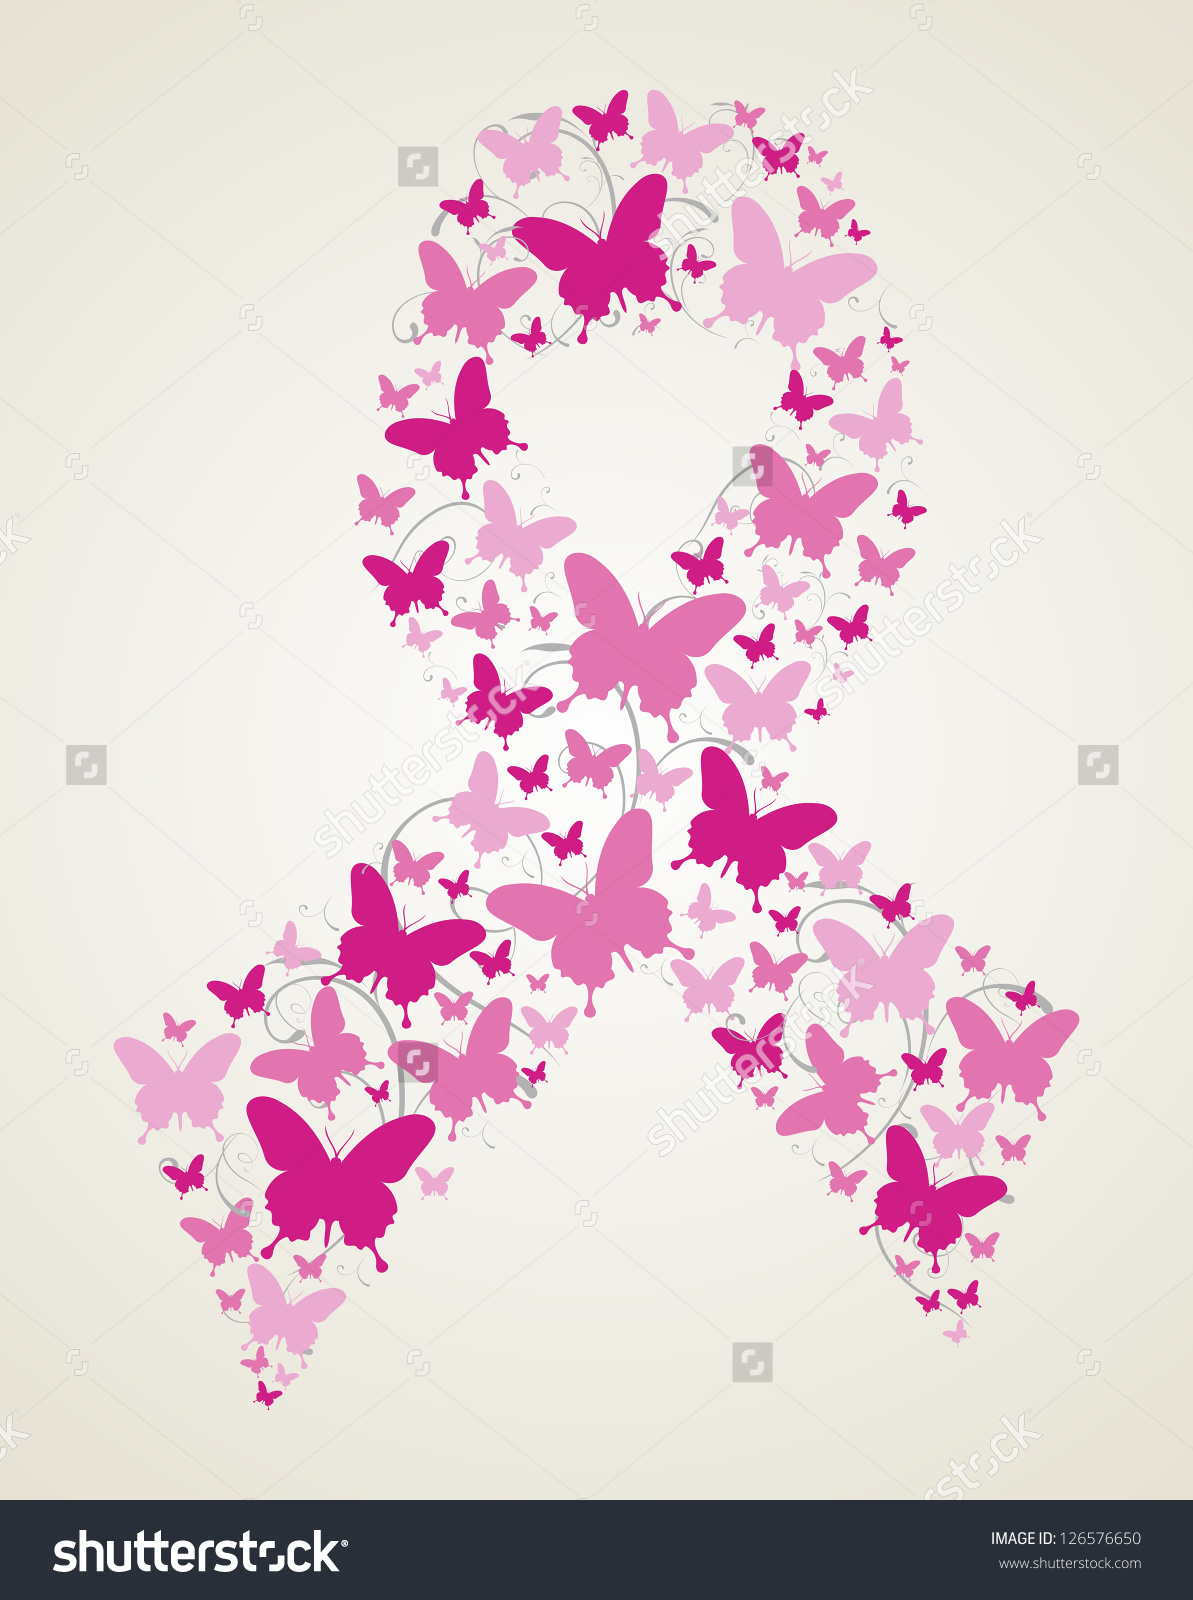 Ribbon butterfly clipart clipart stock Pink Butterflies Breast Cancer Awareness Ribbon Stock Illustration ... clipart stock